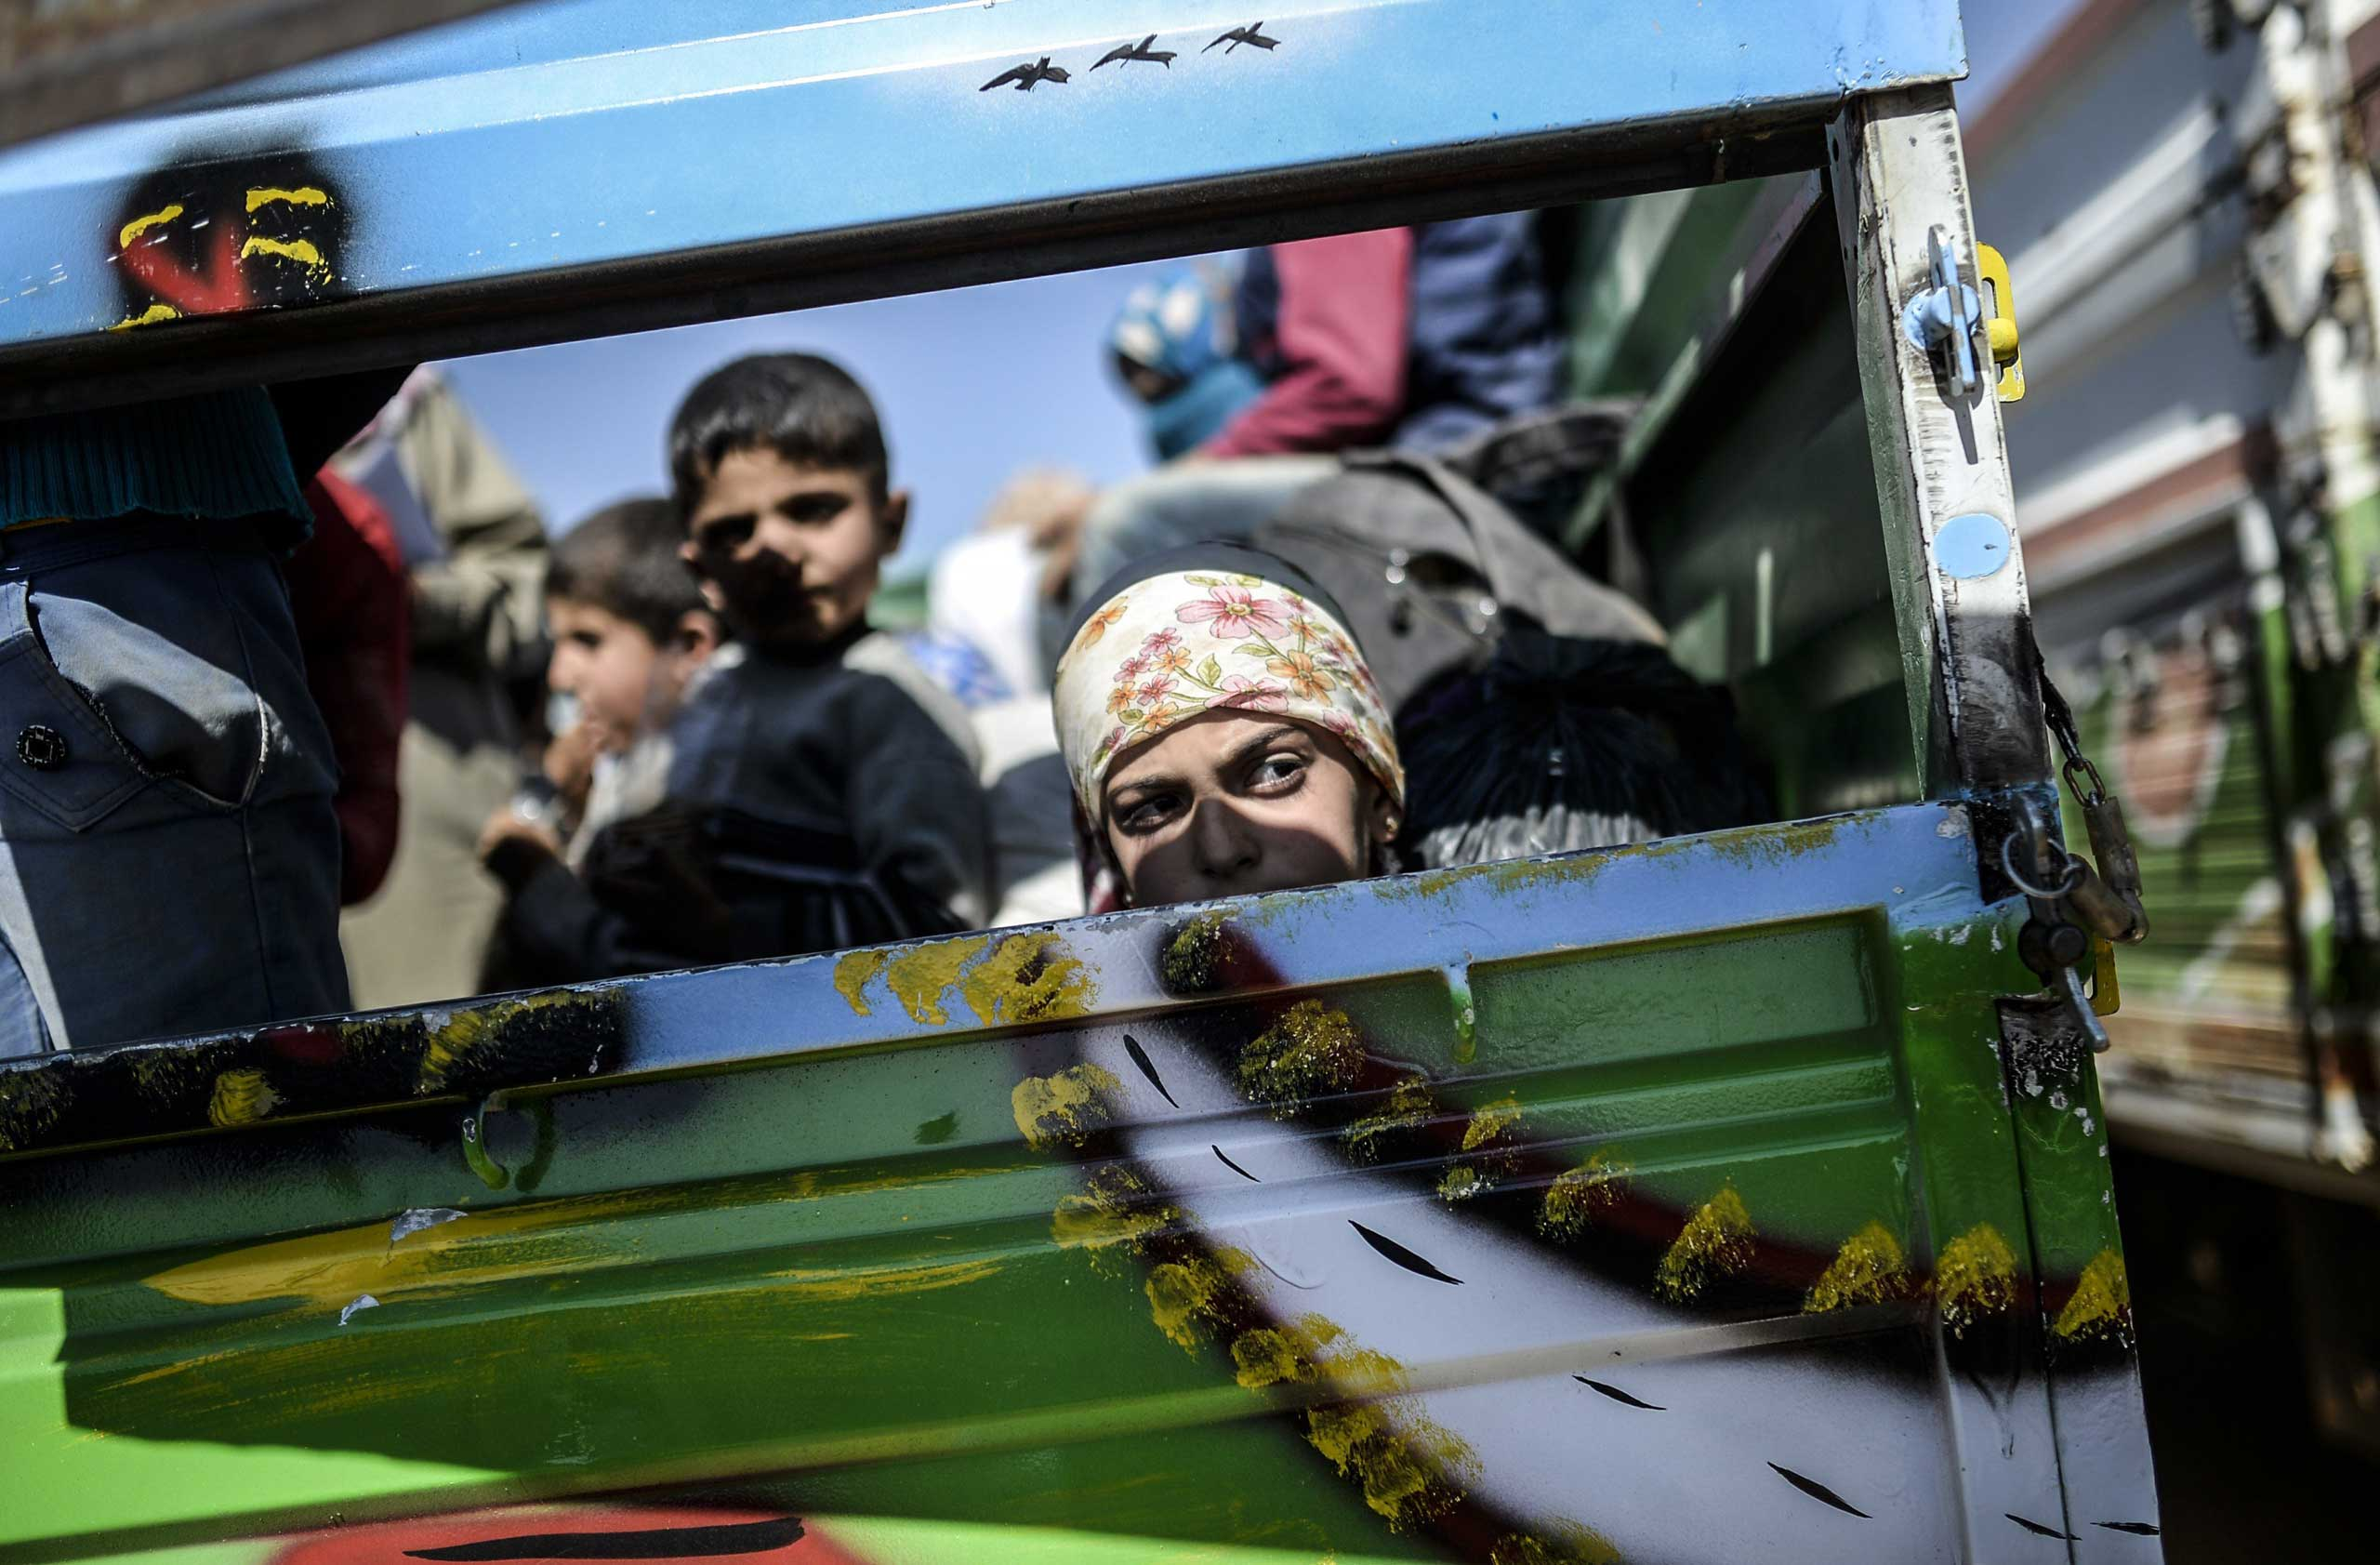 Syrian Kurds sit in a truck after crossing the Syrian-Turkish border in the southeastern town of Suruc in Sanliurfa province on Sept. 23, 2014.